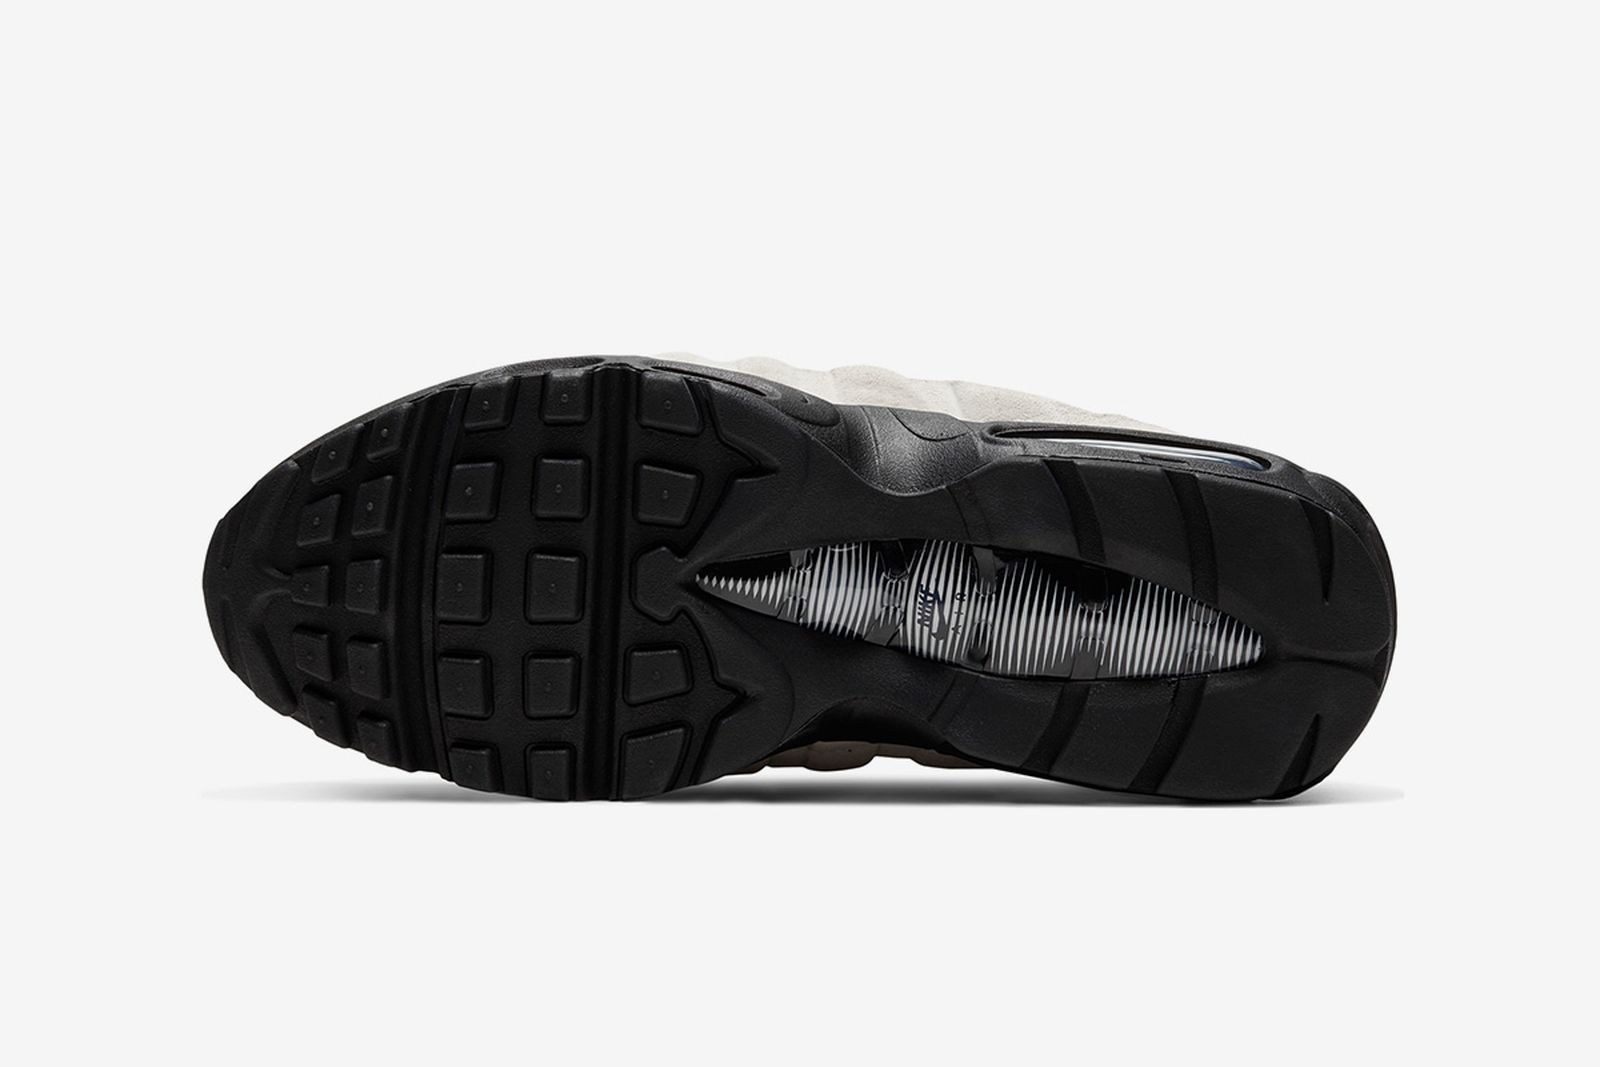 comme-des-garcons-homme-nike-air-max-95-release-date-price-official-15